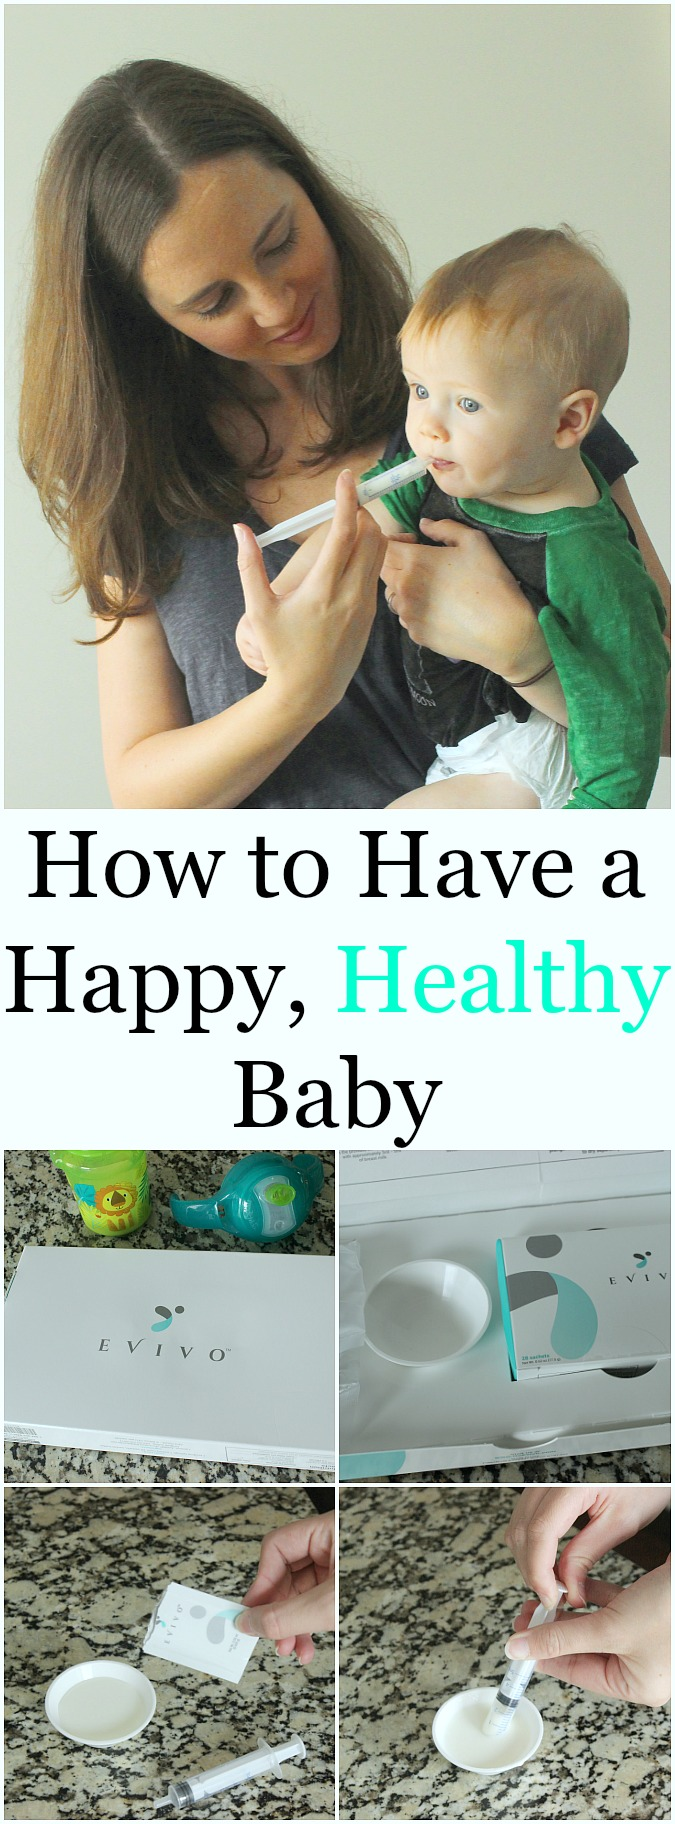 How to Keep baby Healthy and Happy